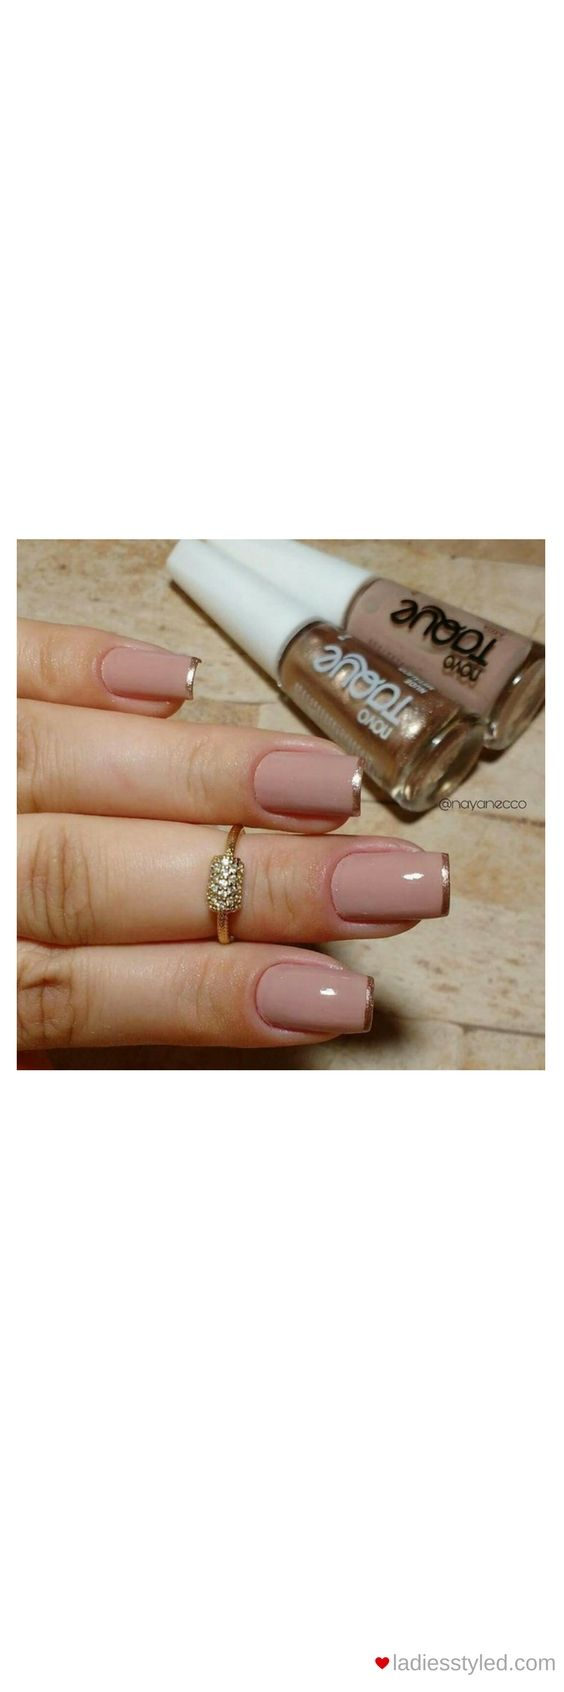 trendy nails that are hot right now